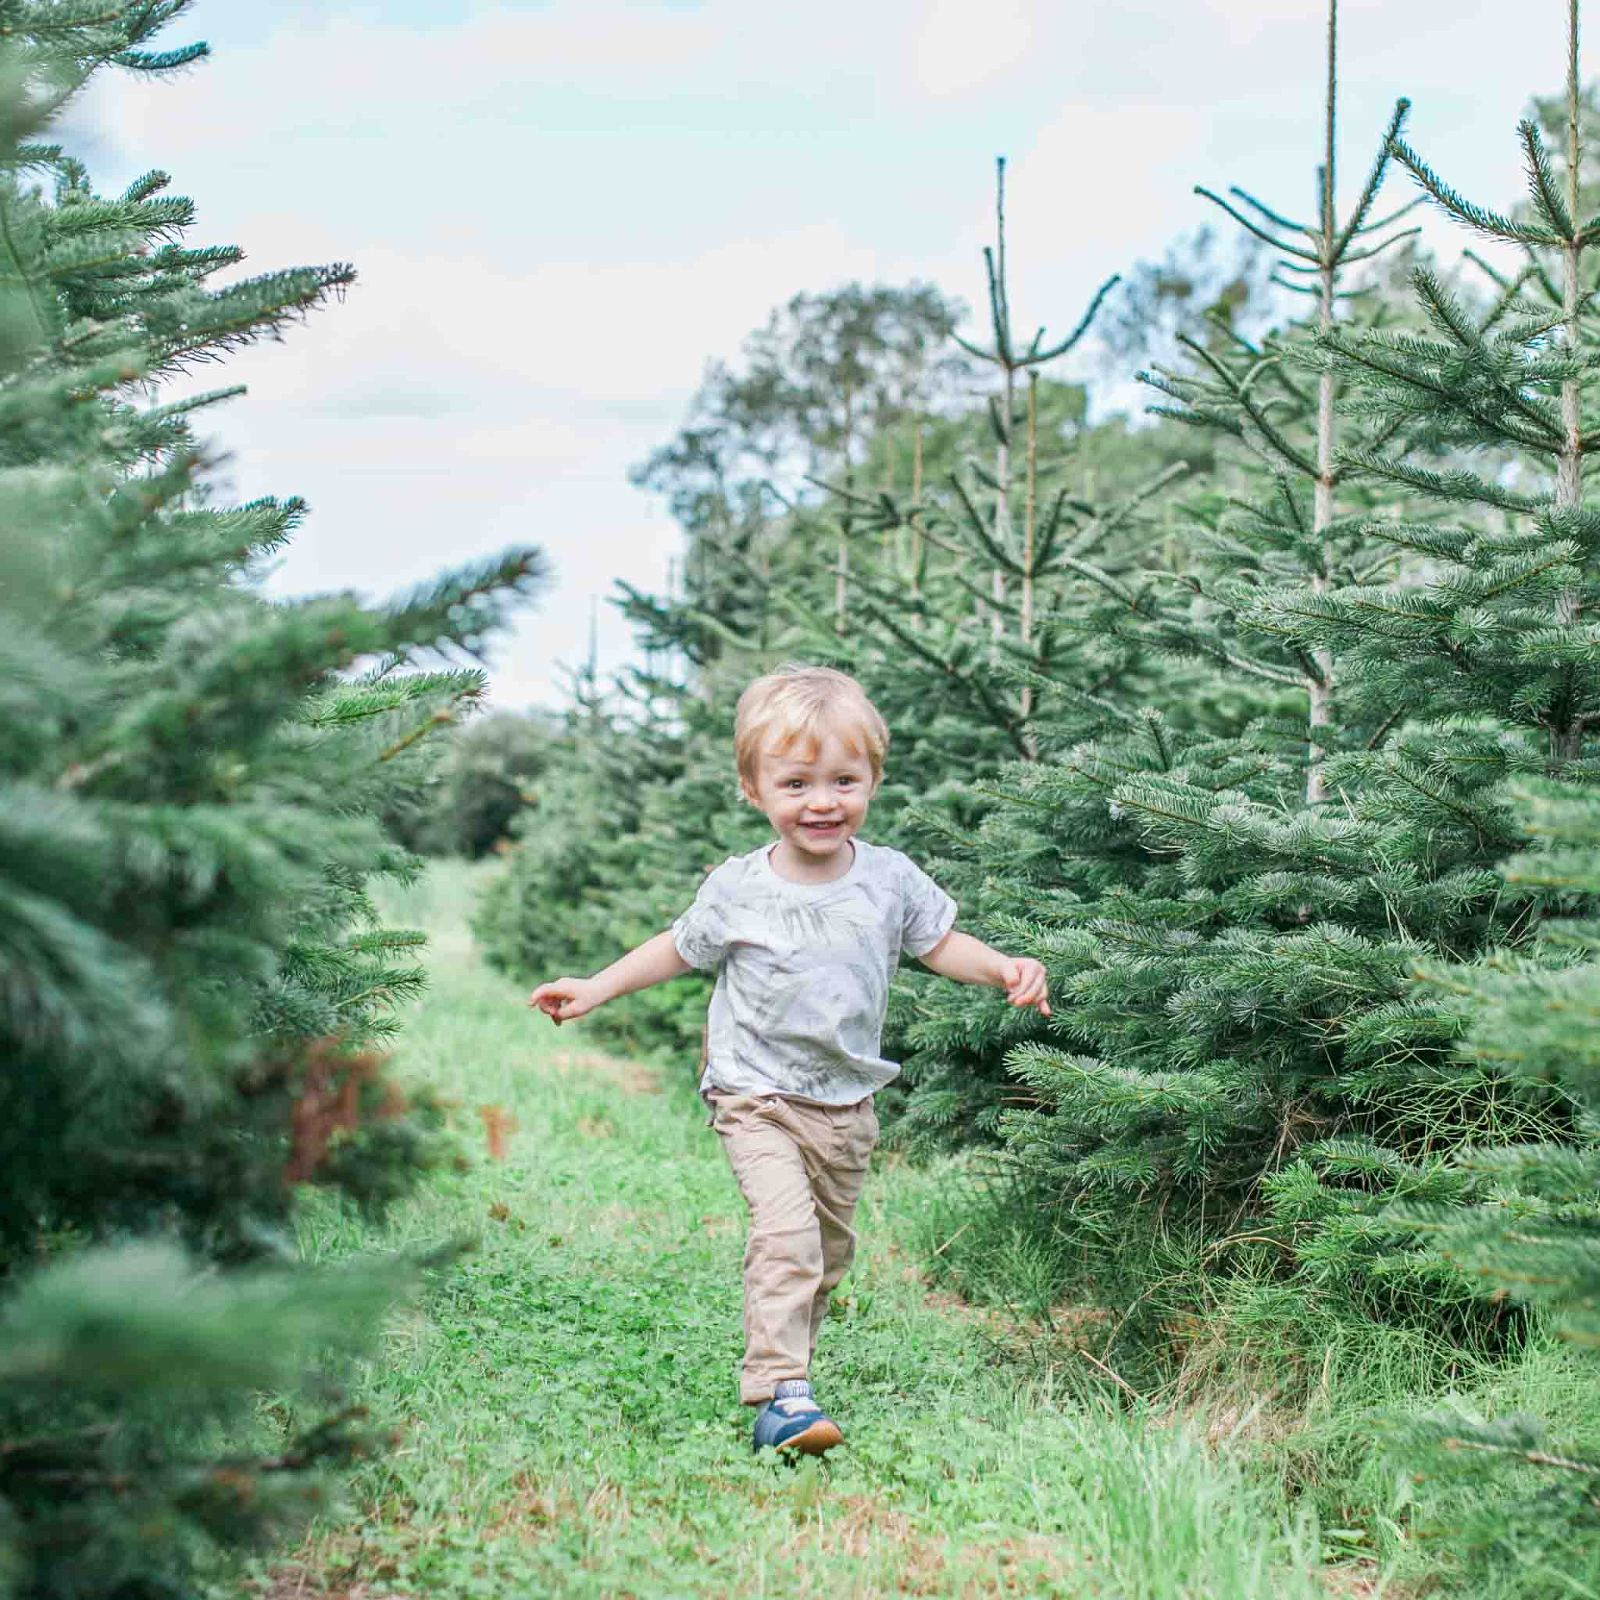 Little boy running through rows of Christmas trees